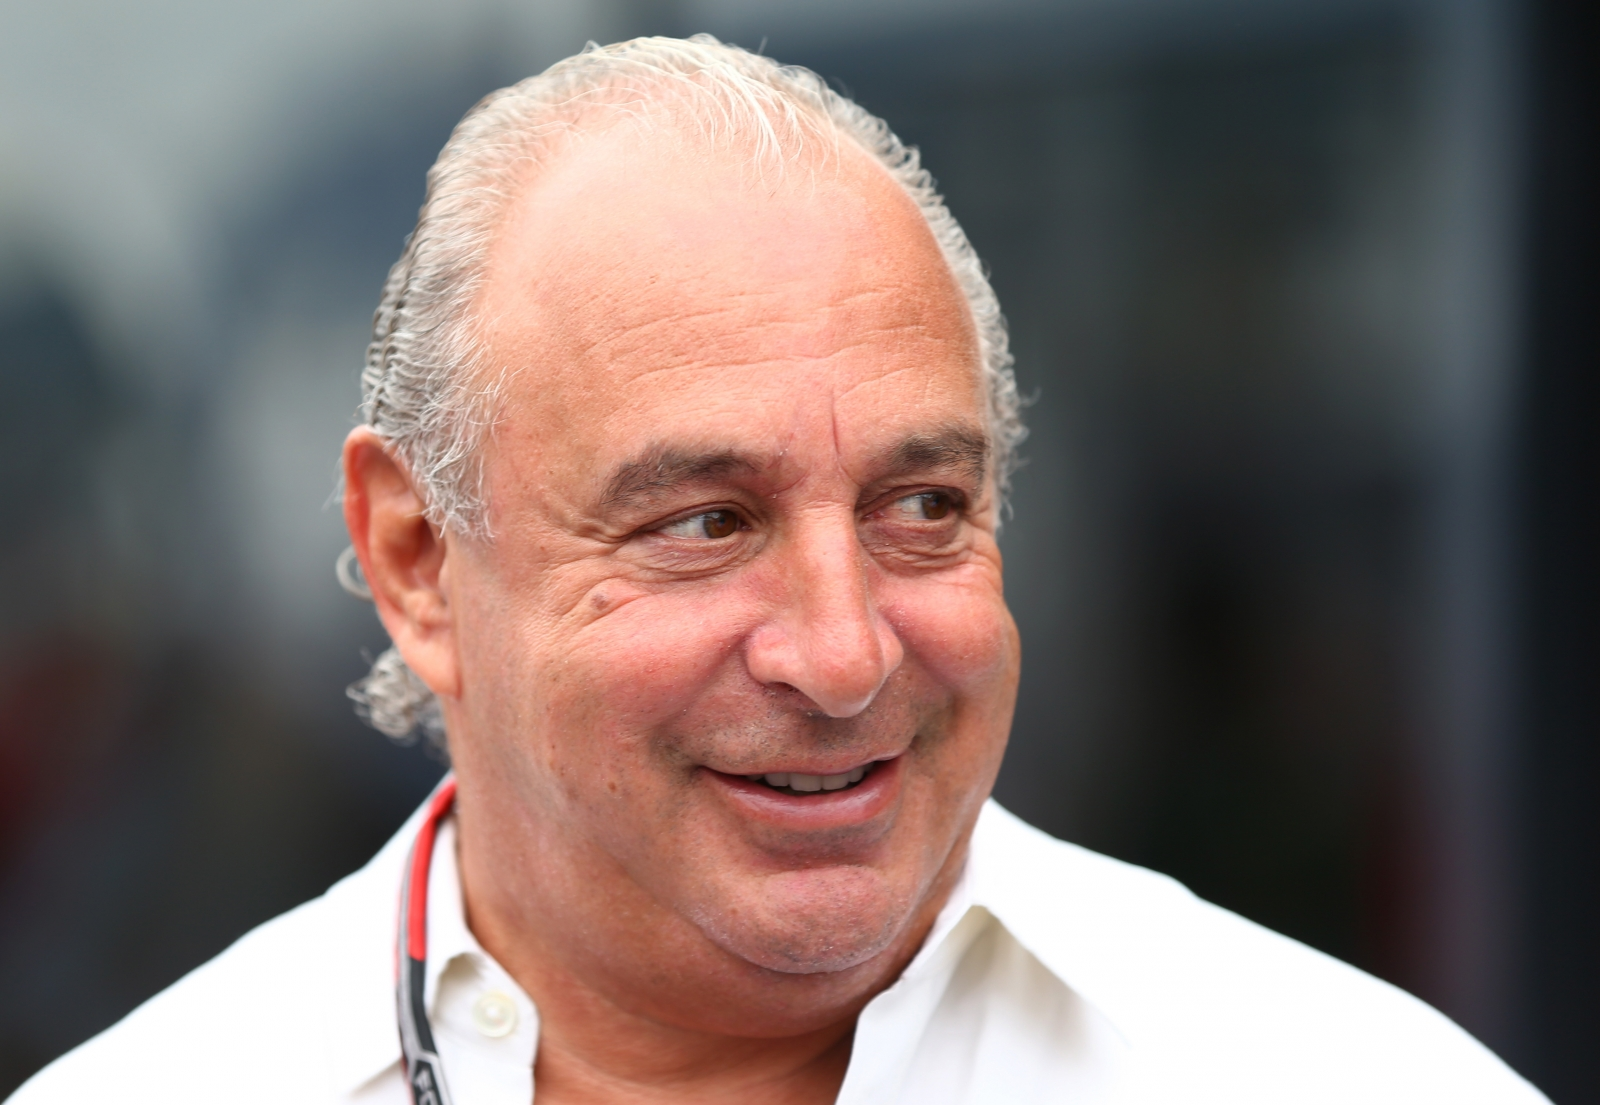 Sir Phillip Green To Pay  U00a3300m To Avoid Lawsuit Over Bhs Pensions